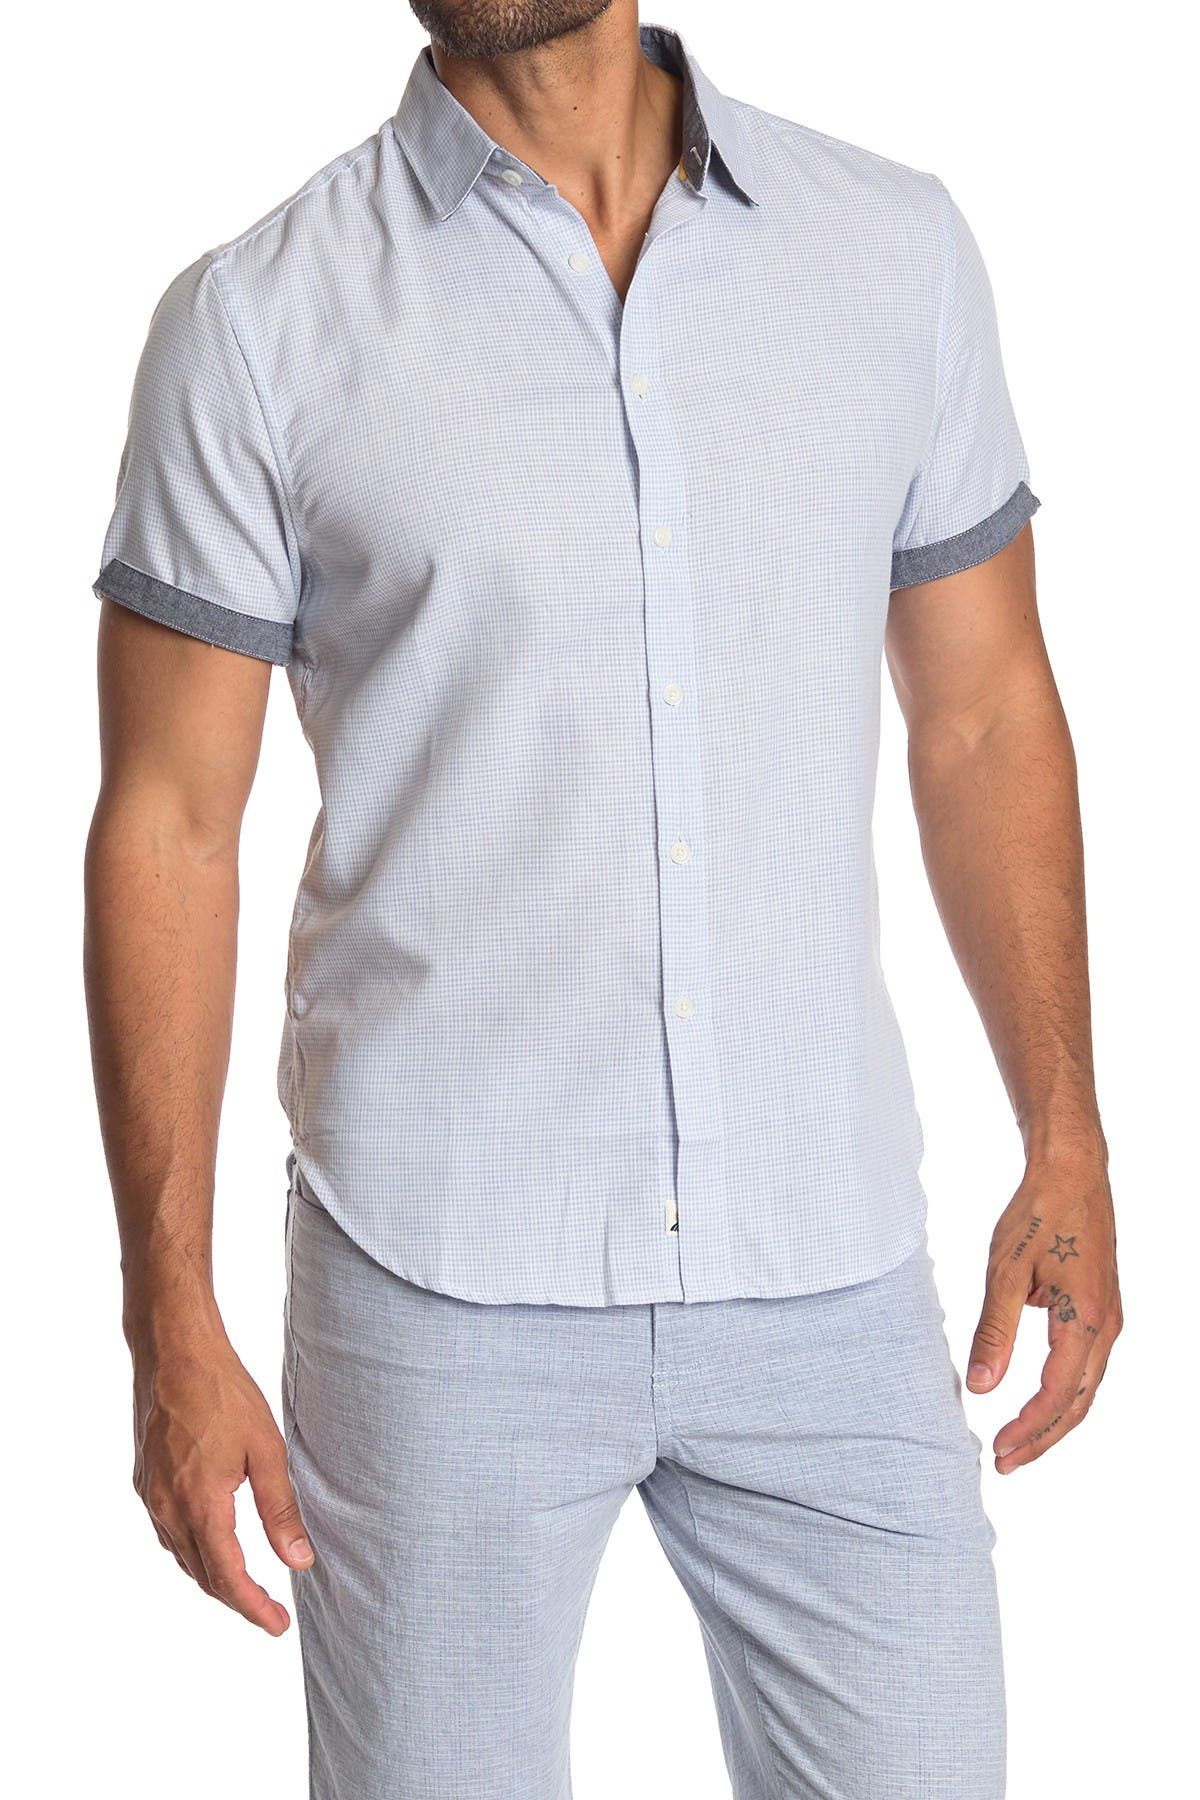 Image of Fundamental Coast Ocean Club Check Short Sleeve Regular Fit Shirt